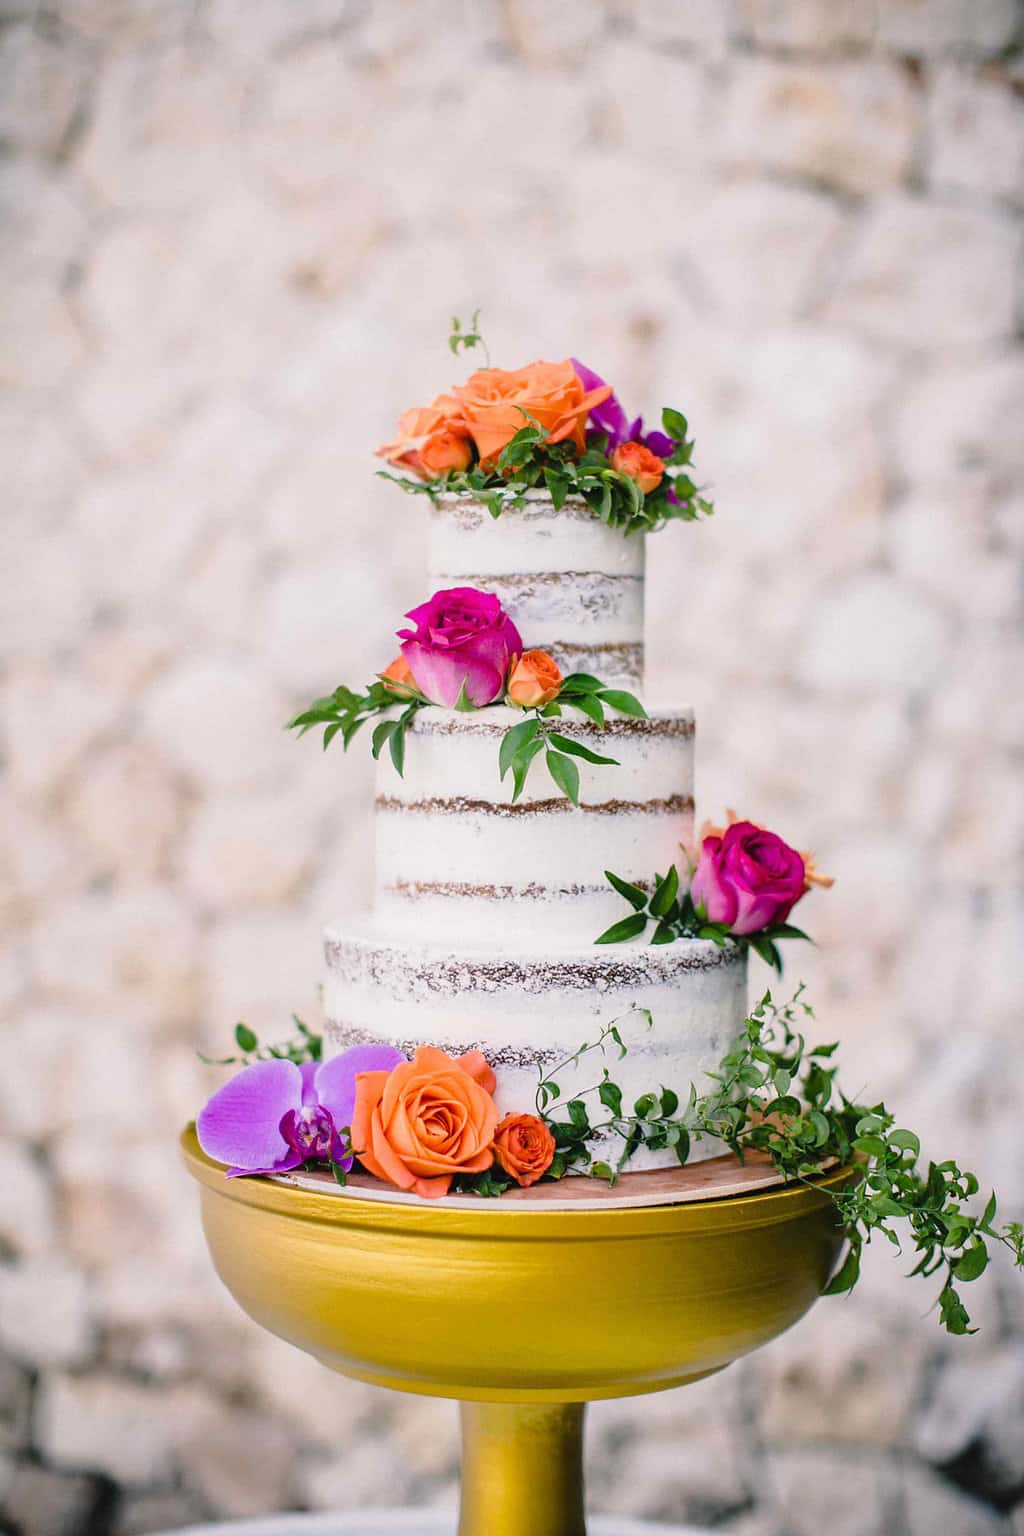 Floral Wedding Cake Ideas Gorgeous Cake Covered With Flowers Wedding Inspiration